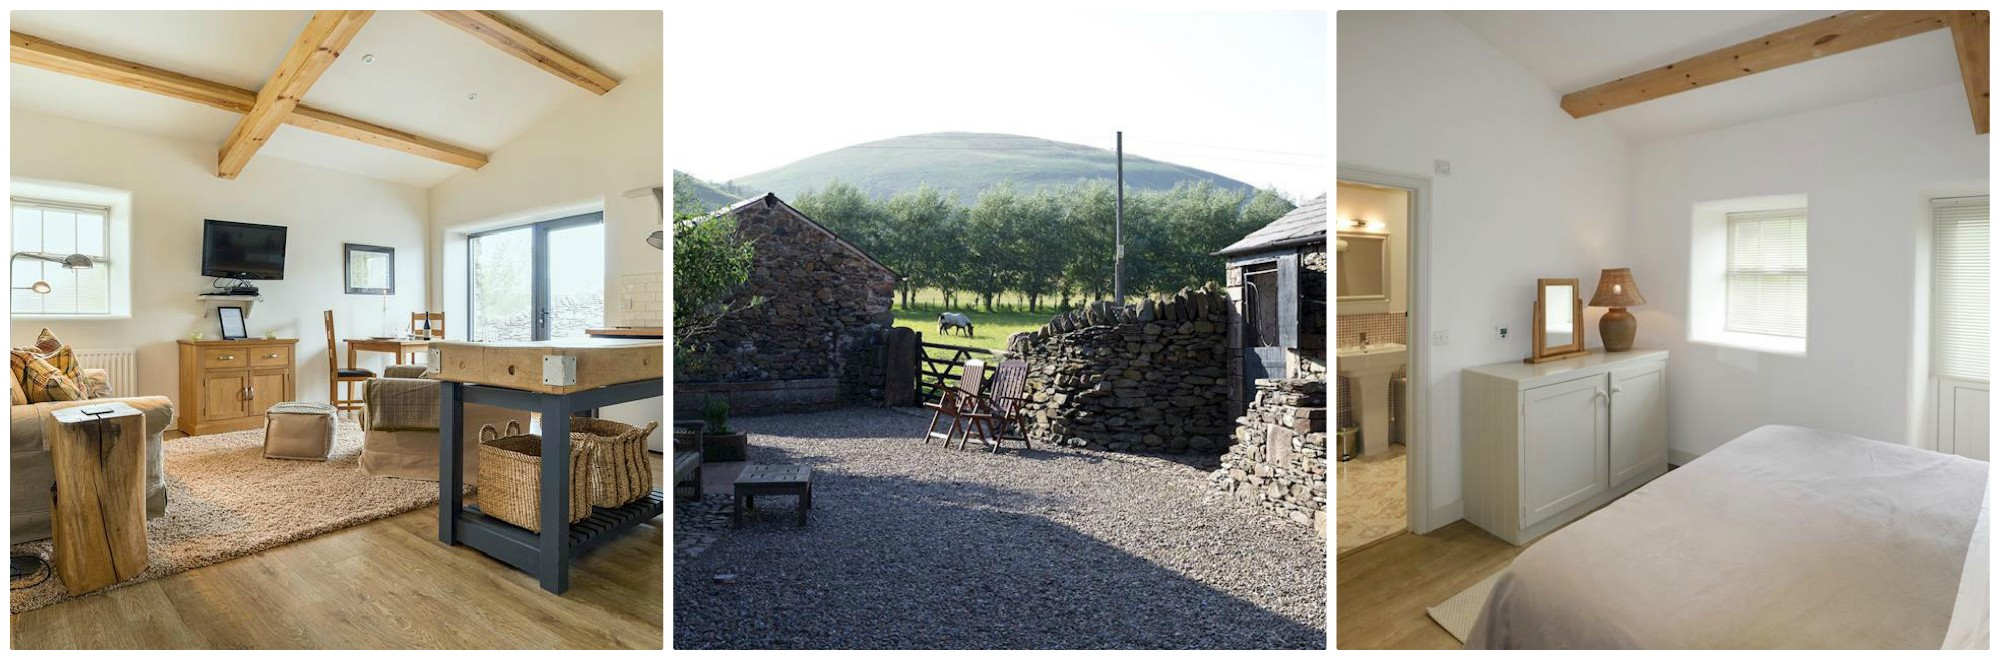 Sleeps 2 (2 dogs welcome, too) in a converted barn